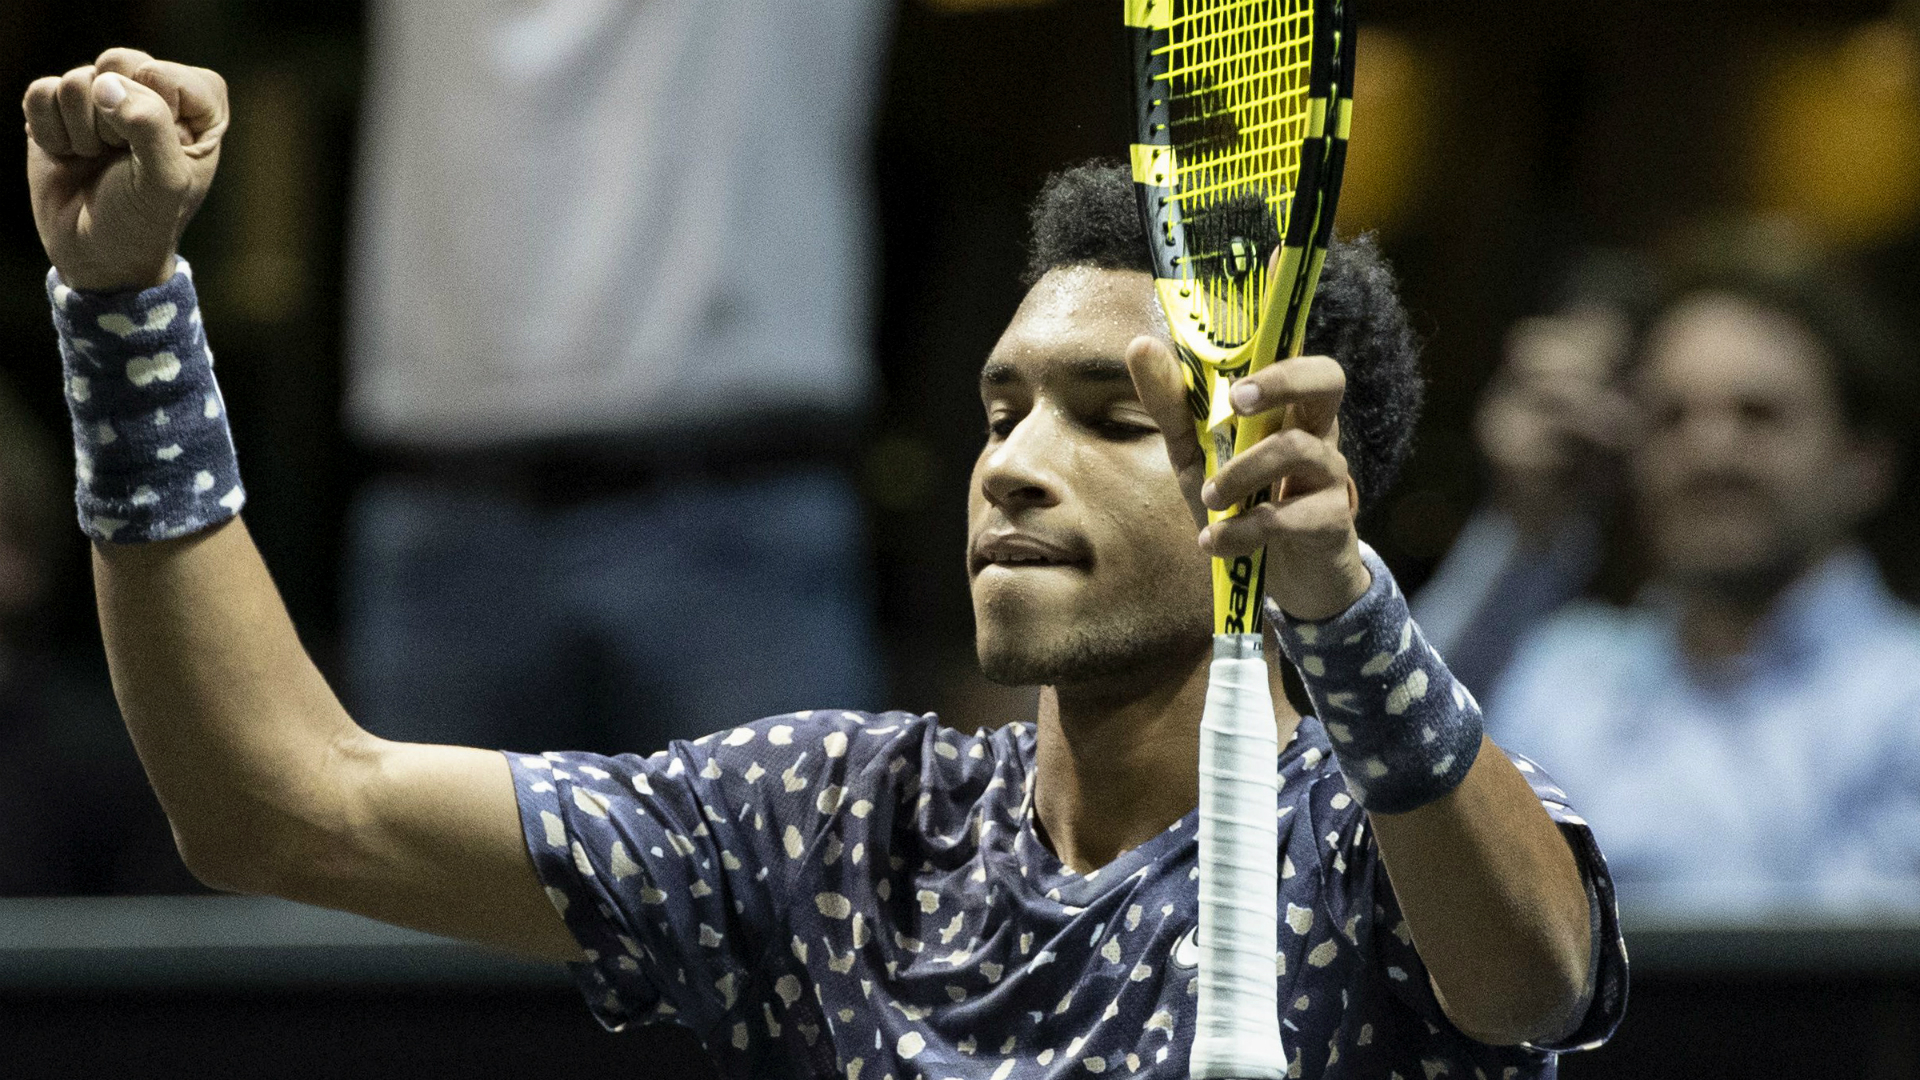 Rotterdam Open 2020: Felix Auger-Aliassime reaches first ATP Tour final of year